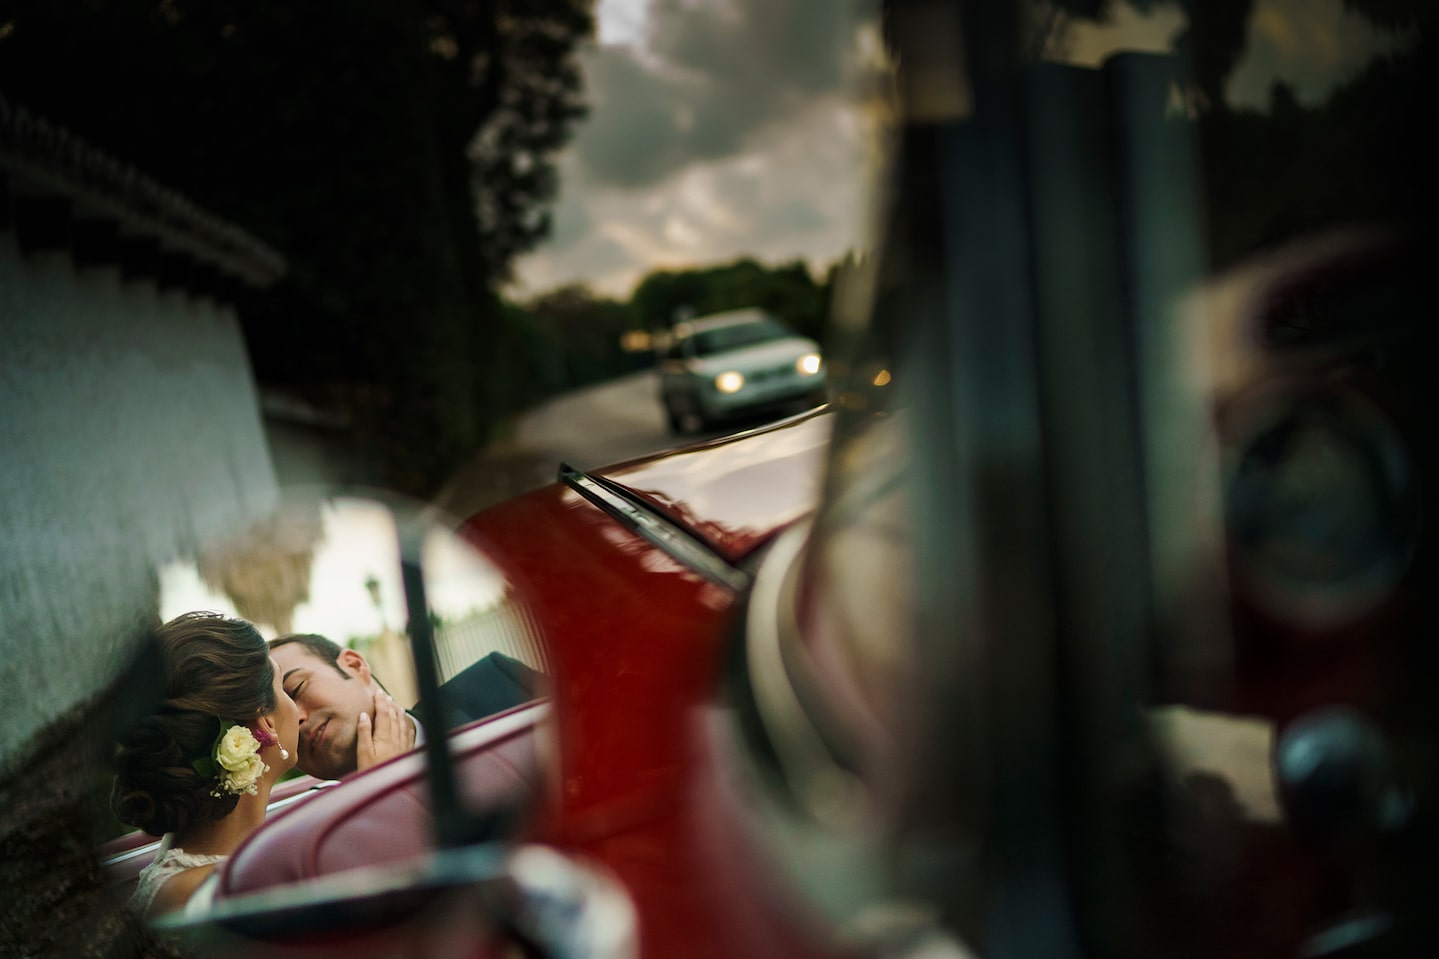 jorge miguel sony alpha 9 bride and groom reflected in car mirror